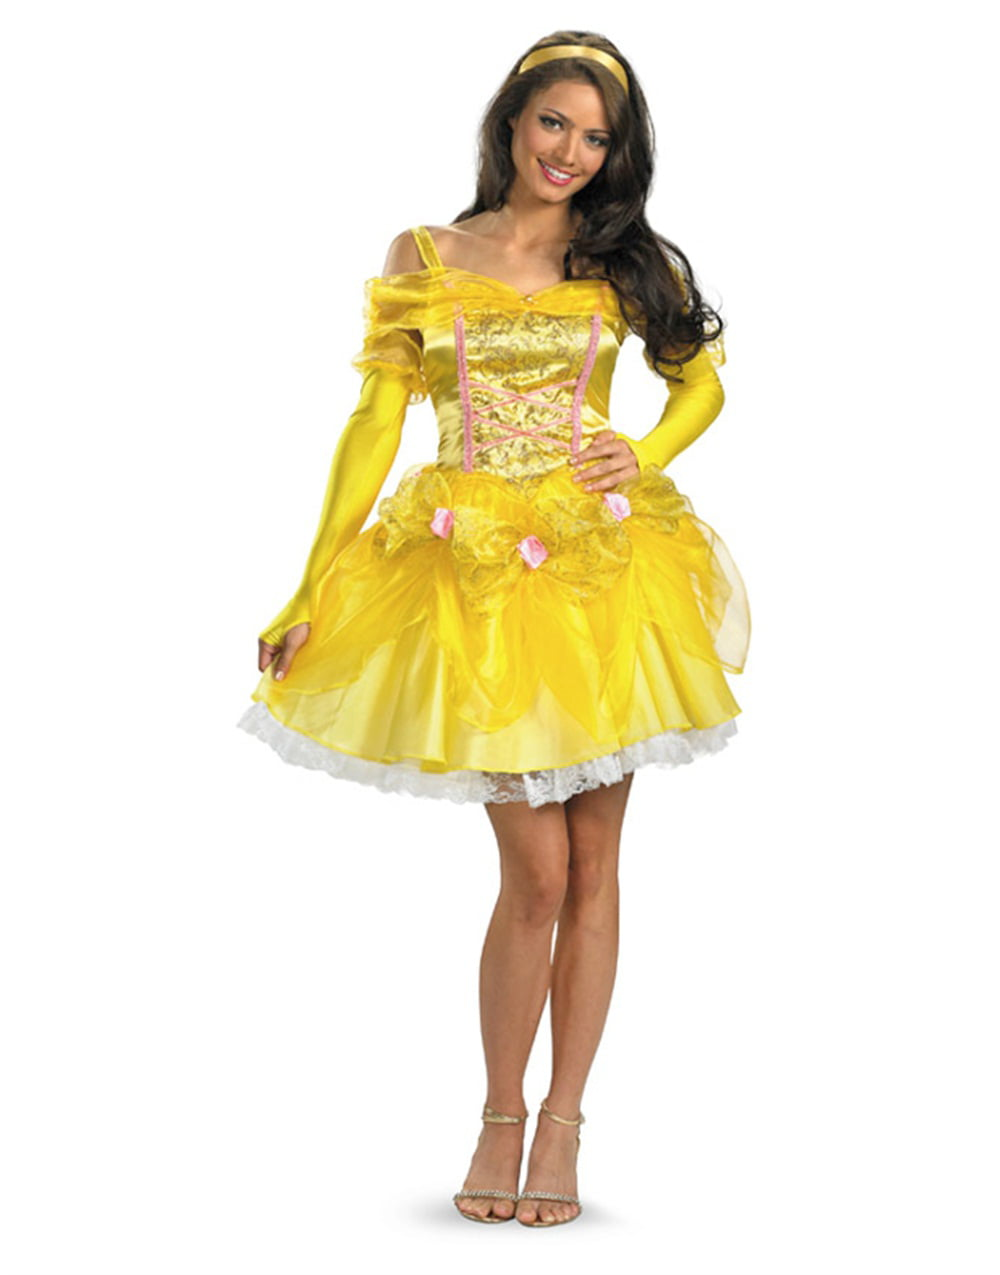 Disney princess gowns for adults - Disney Princess Gowns For Adults 36